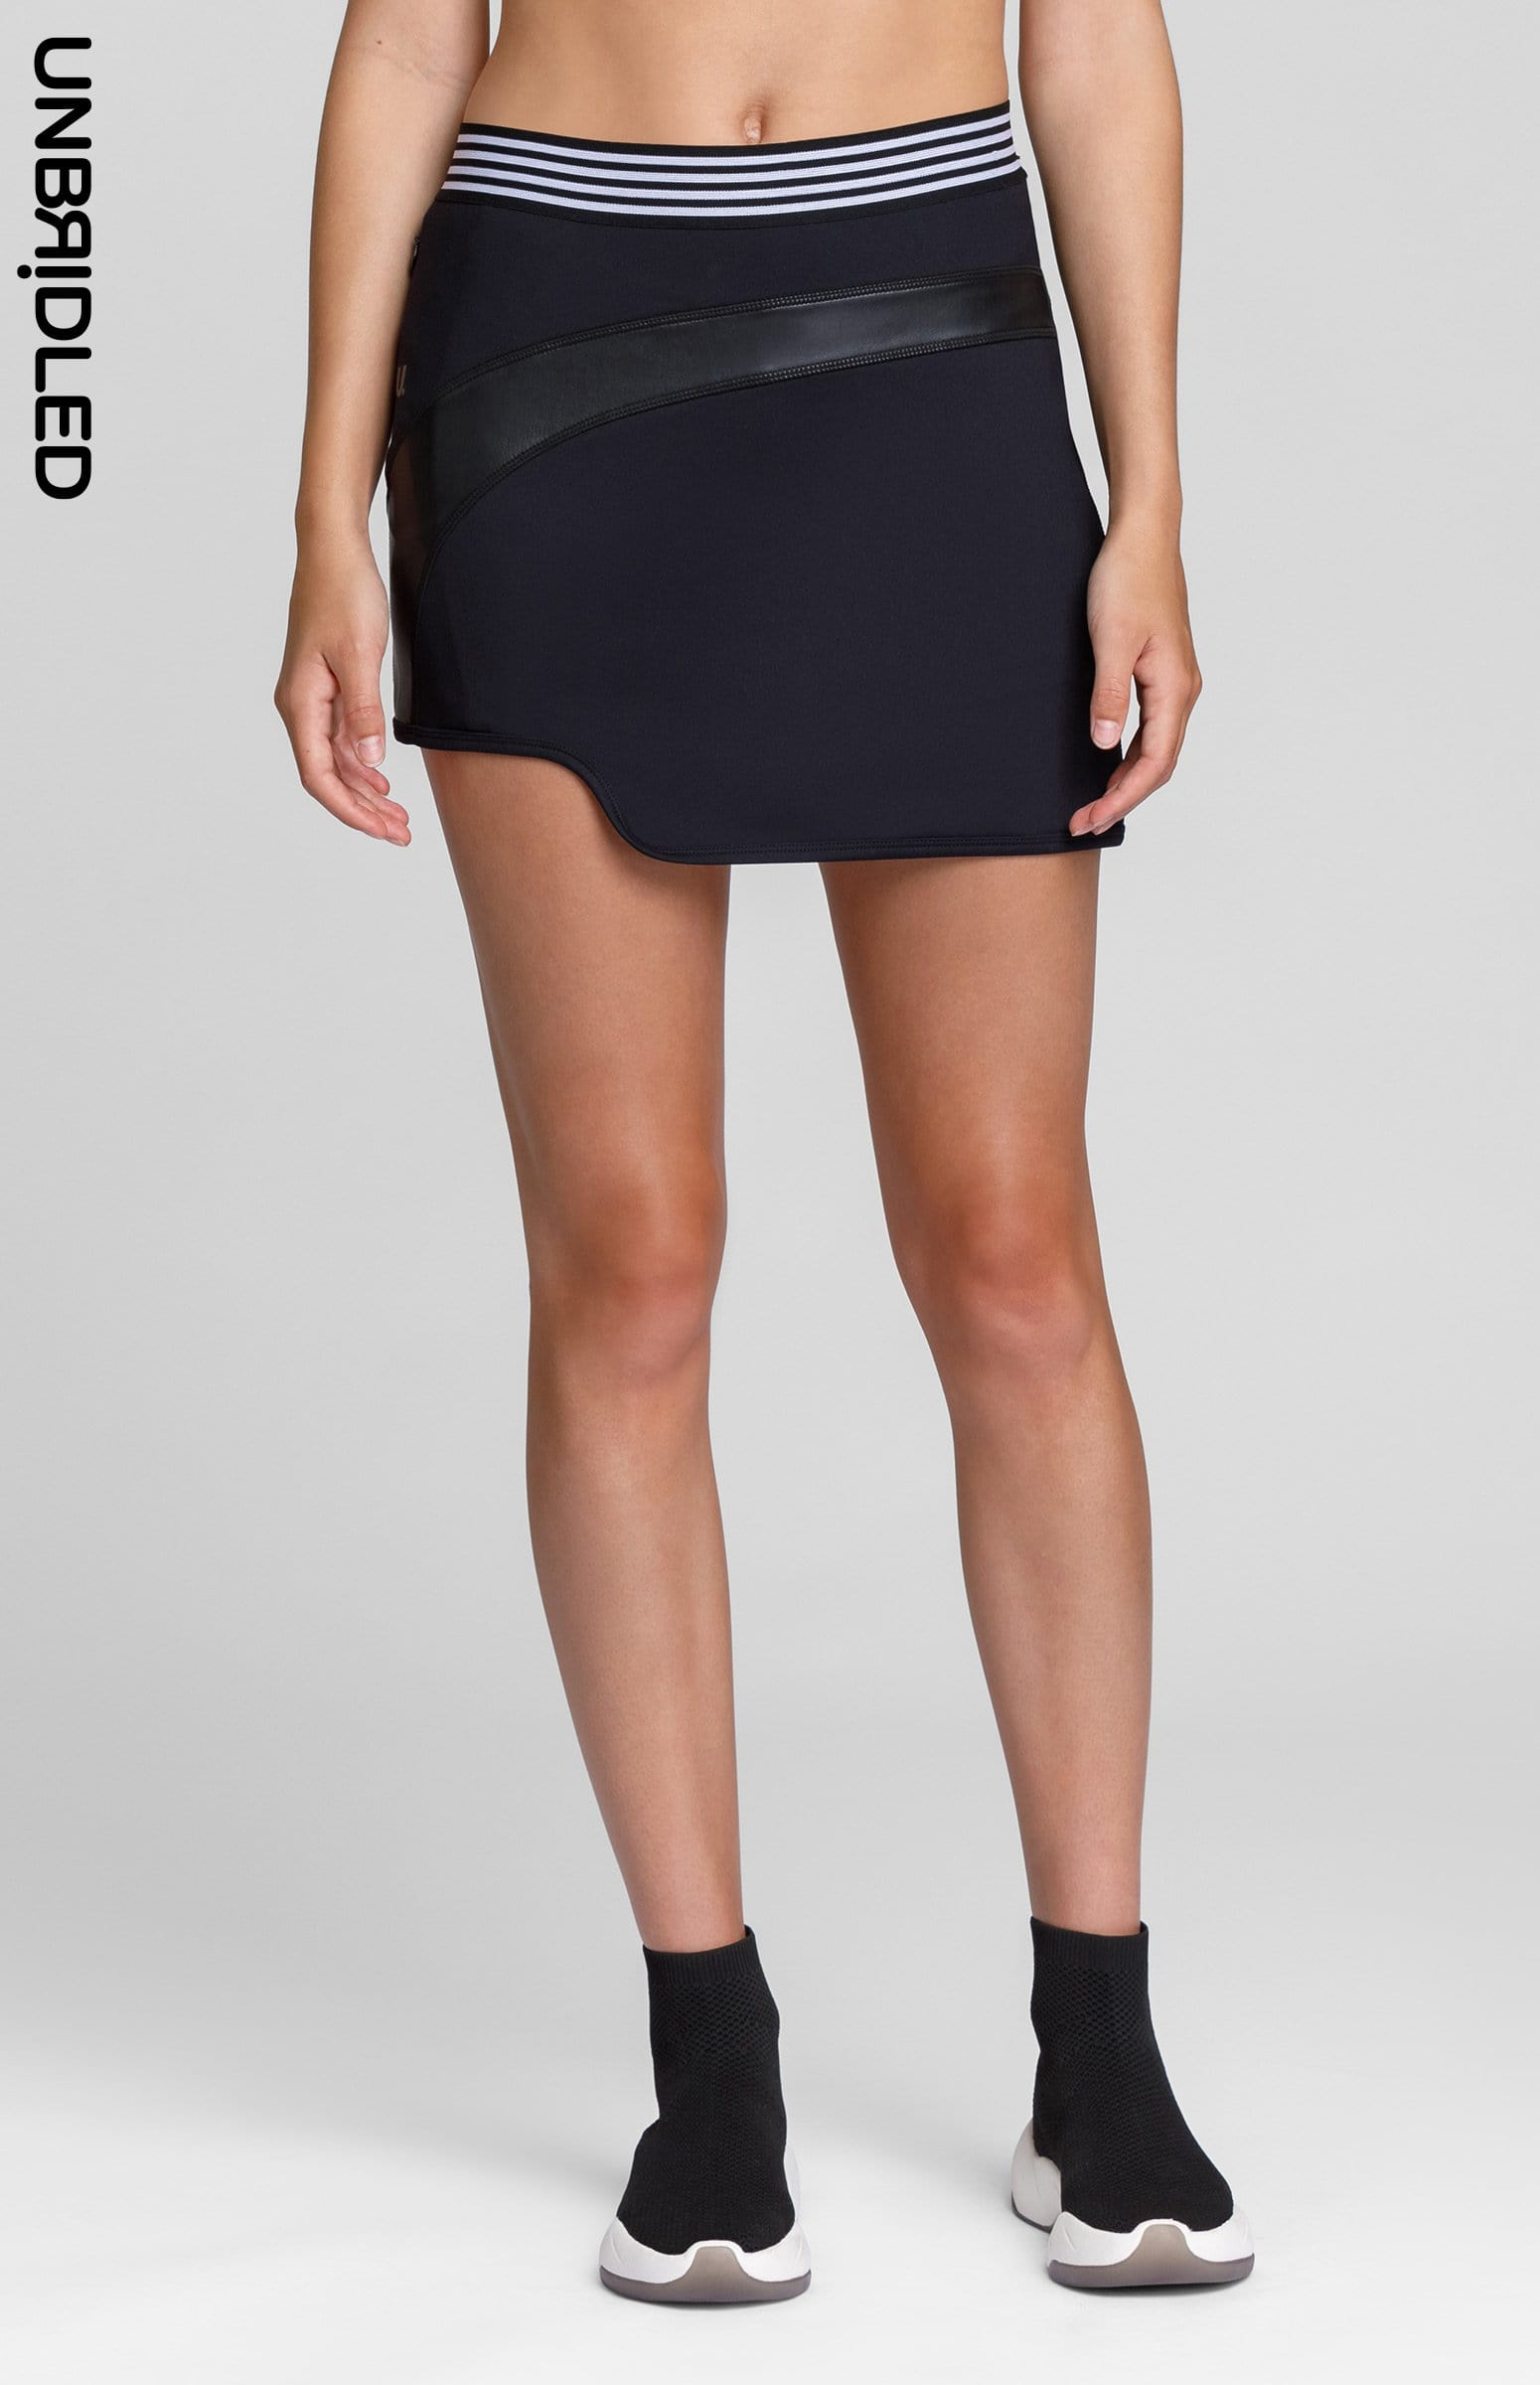 Hedy Faux Leather Skort - Onyx